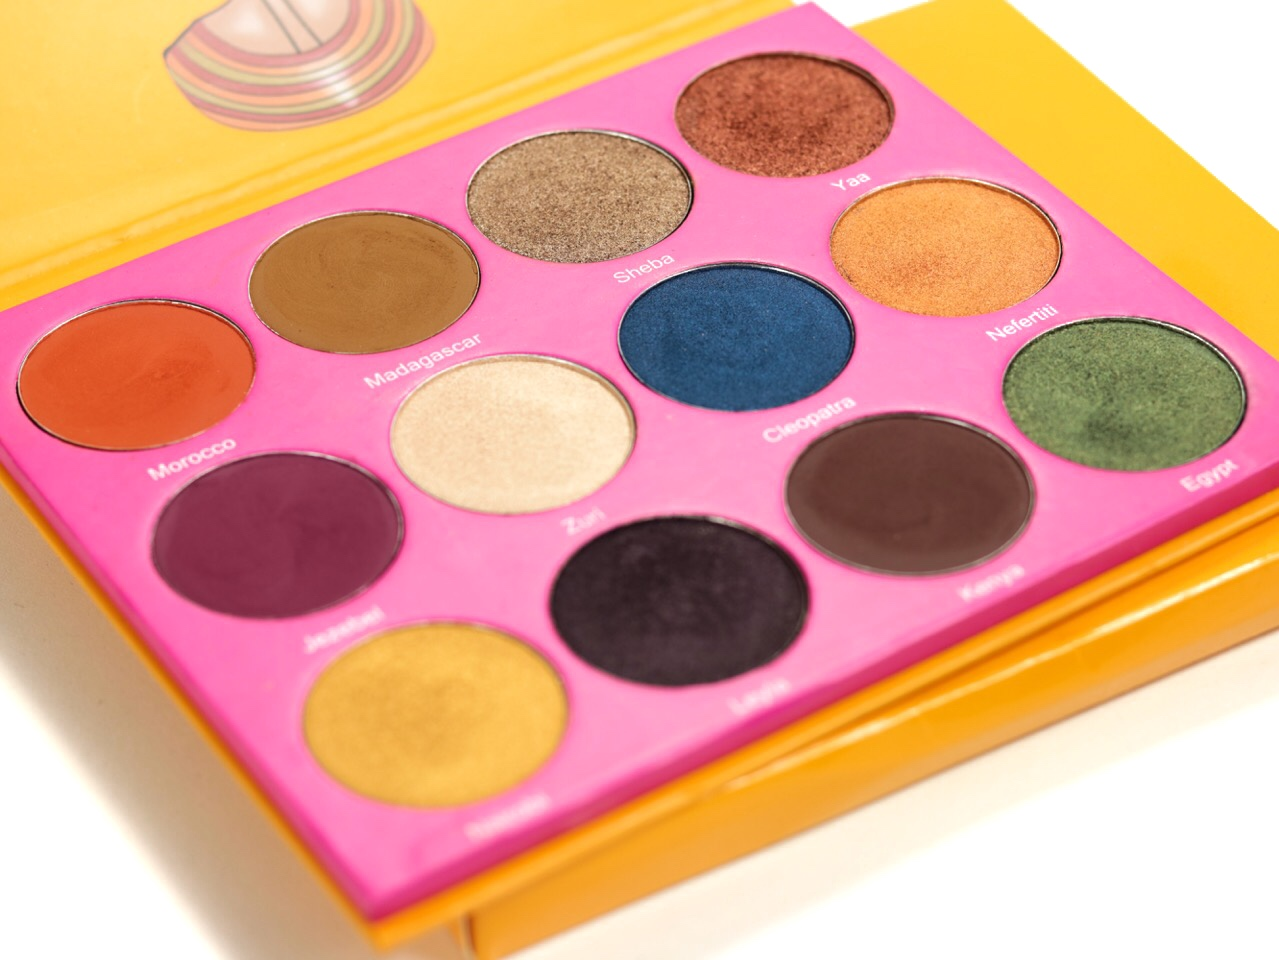 Juvia's Place The Nubian 2 Avis et Swatch Juvia's Place The Masquerade Palette Avis et Swatch